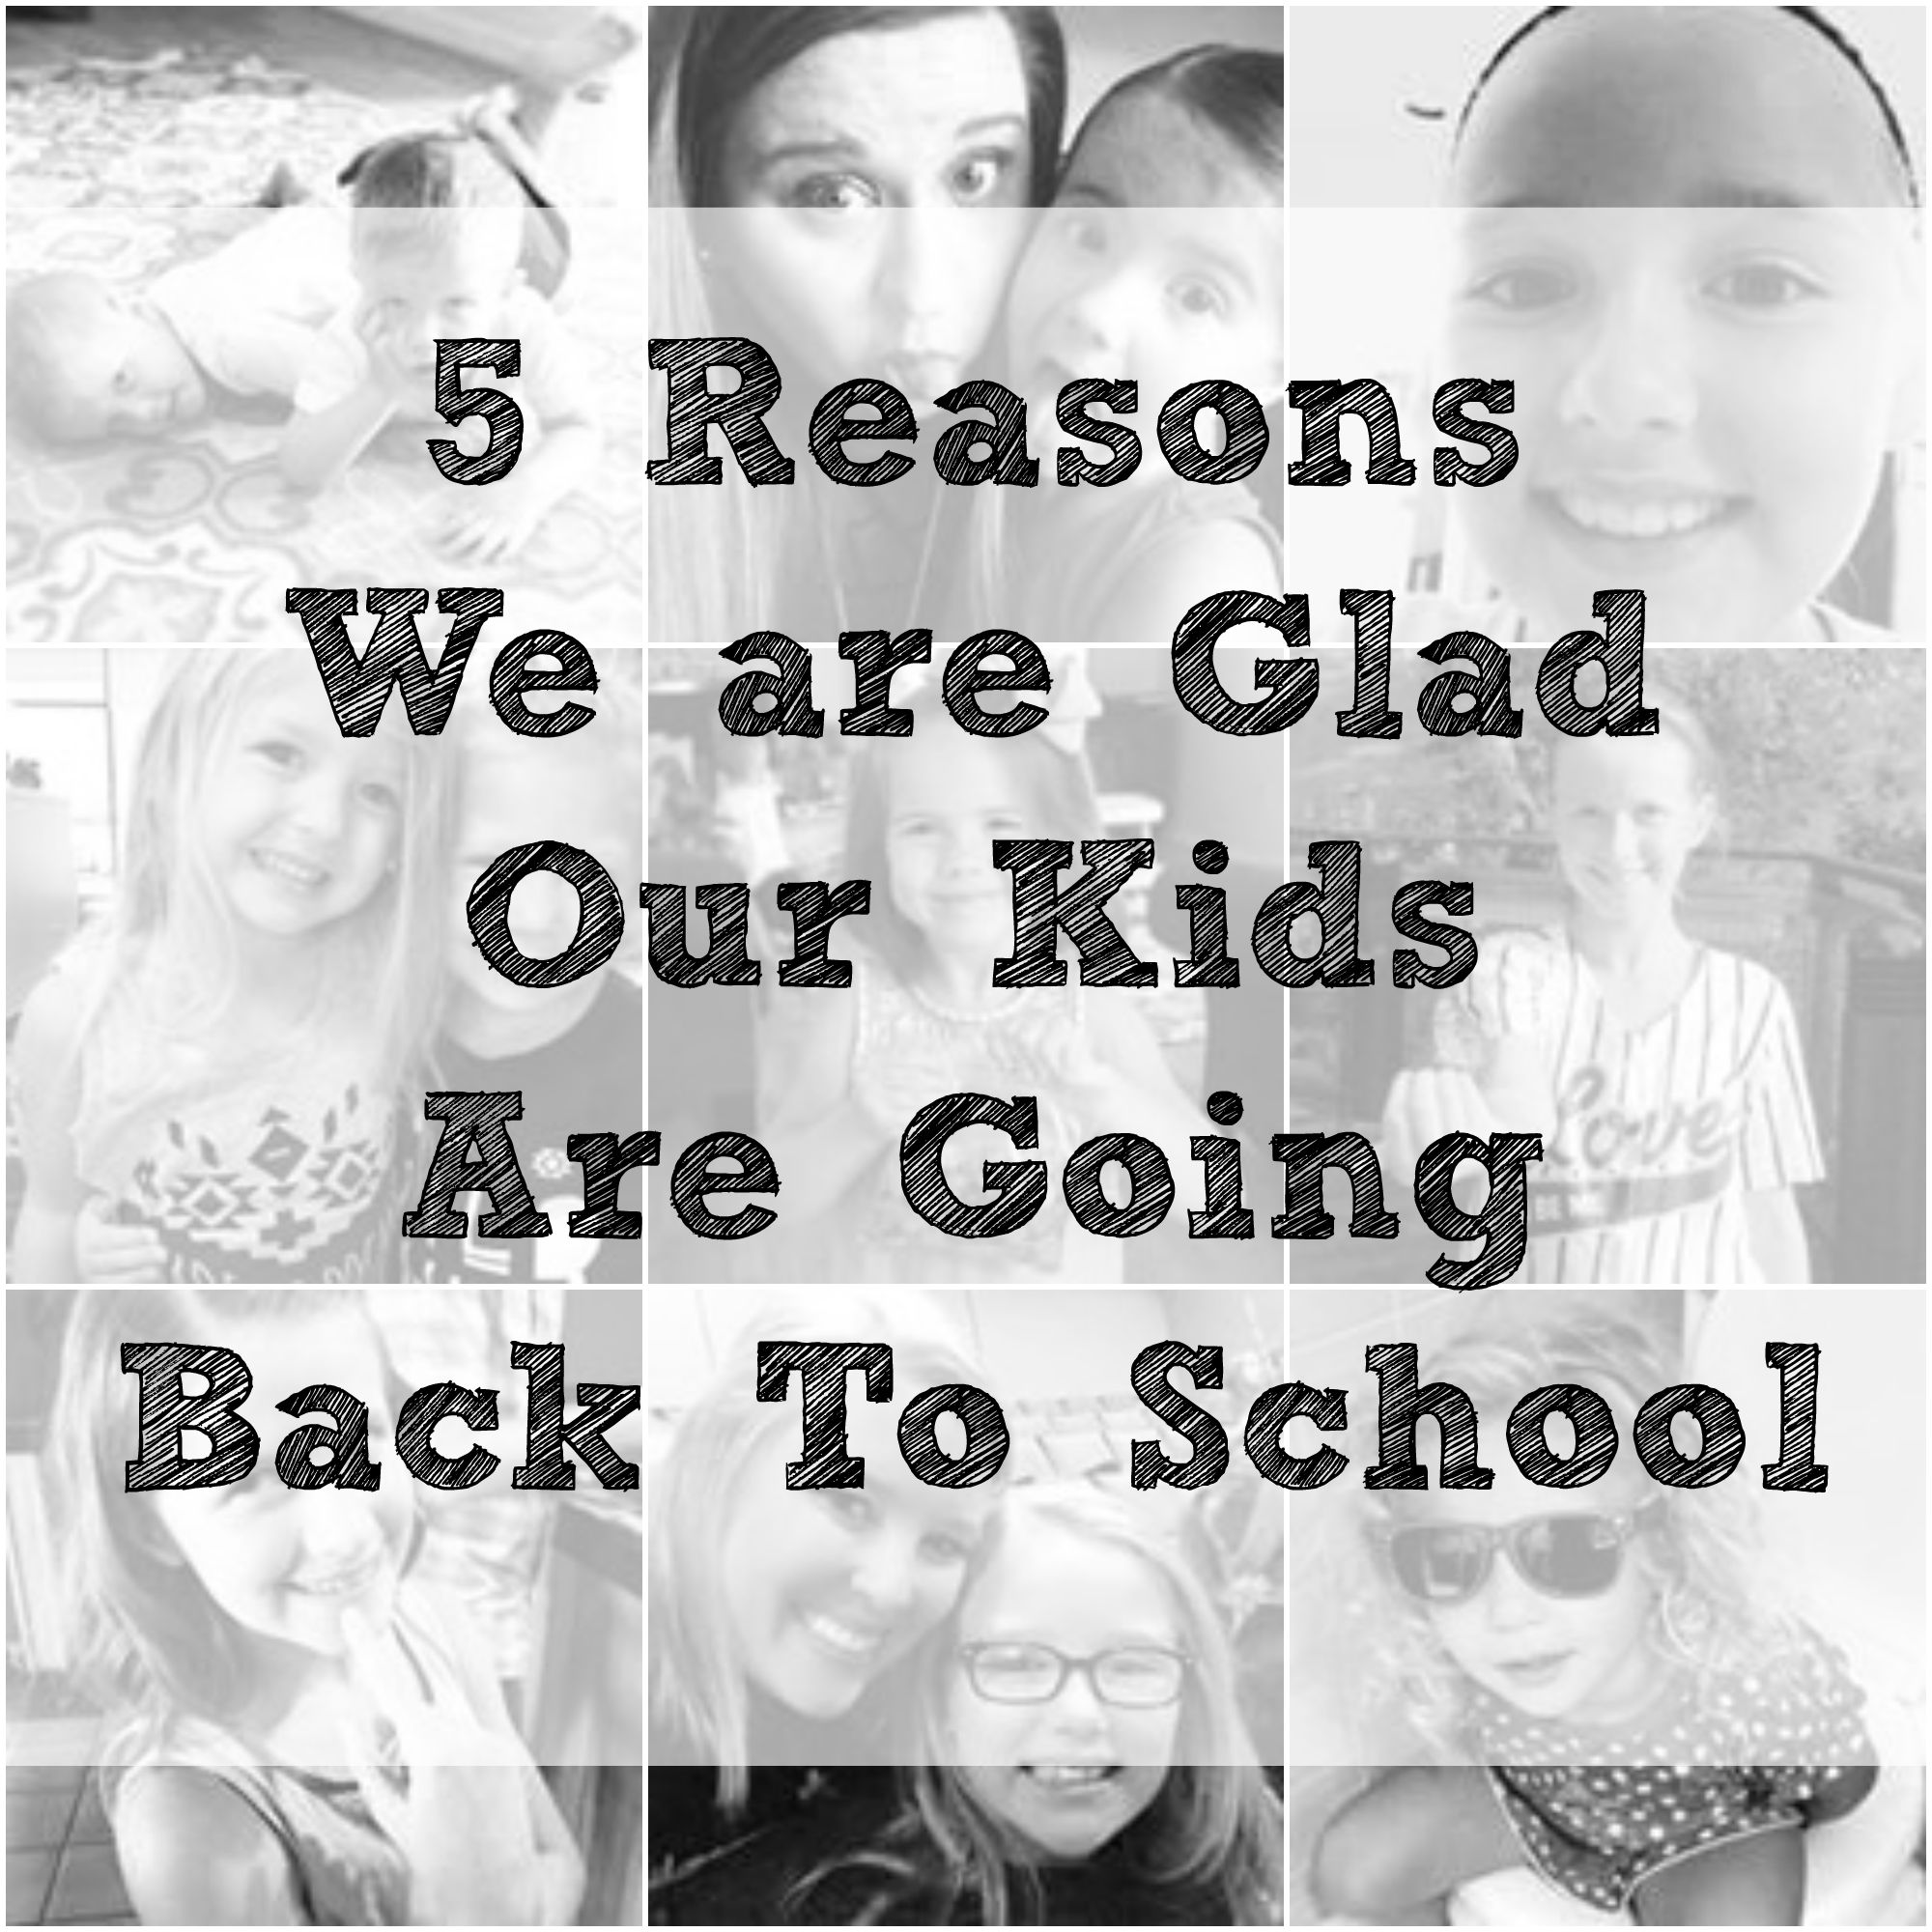 reasons for going back to school Bullying in schools worried about going back to school worried about school bullying intimidation, threats, taunting, violence recently there's been much.